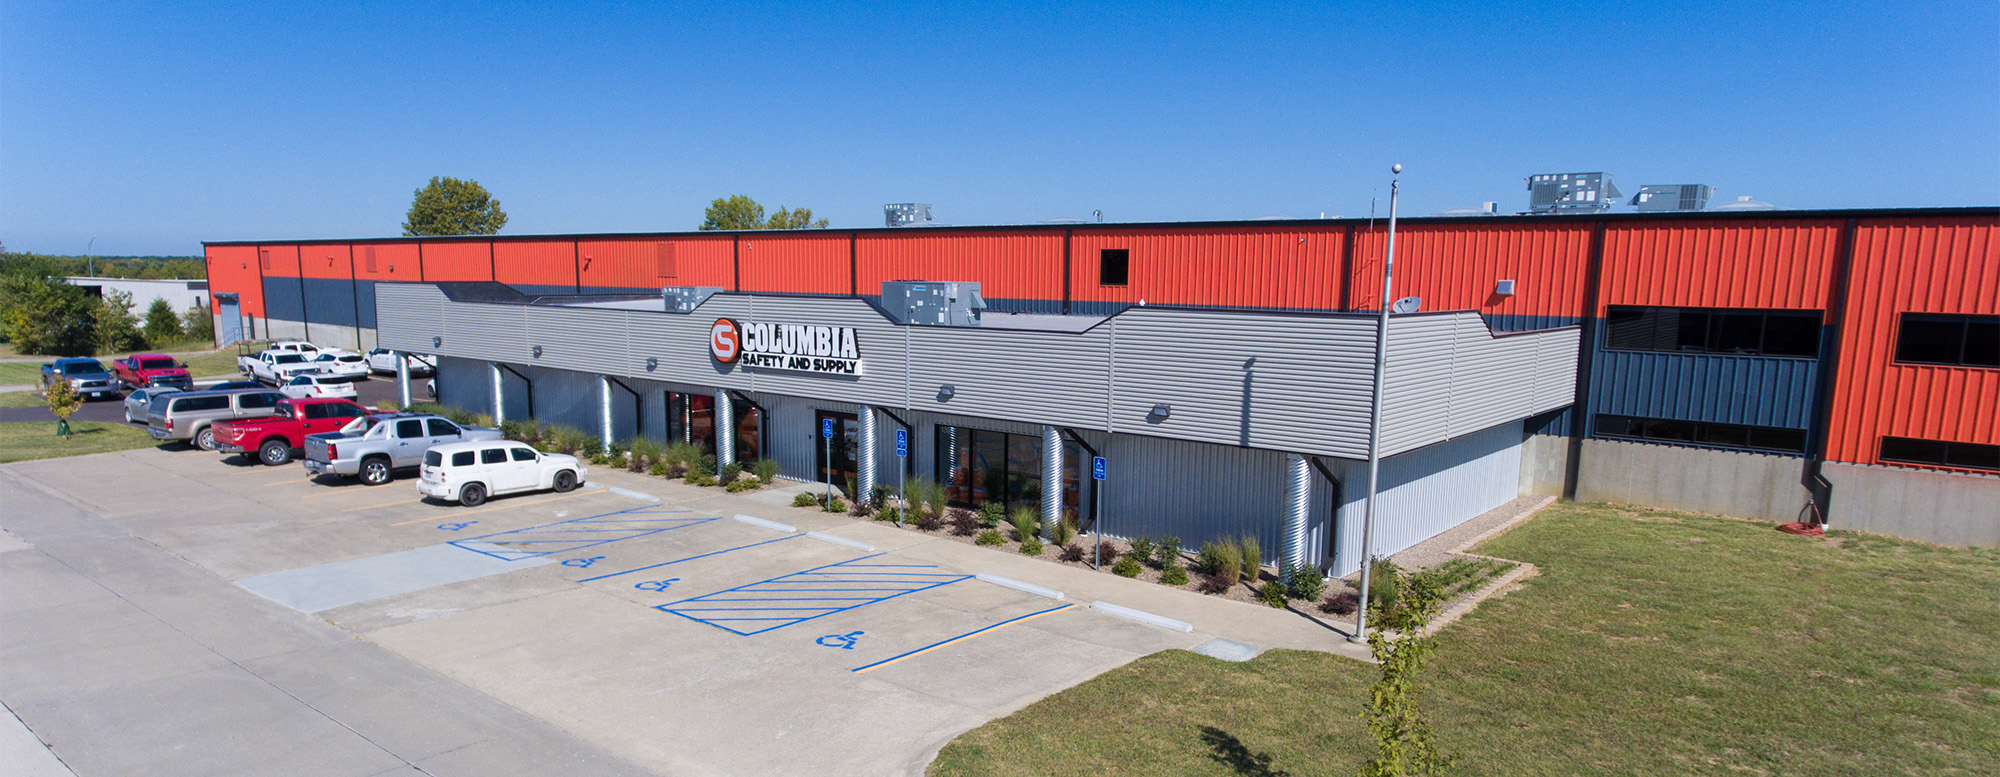 Columbia Safety and Supply's Global Flagship Store located in Columbia, MO